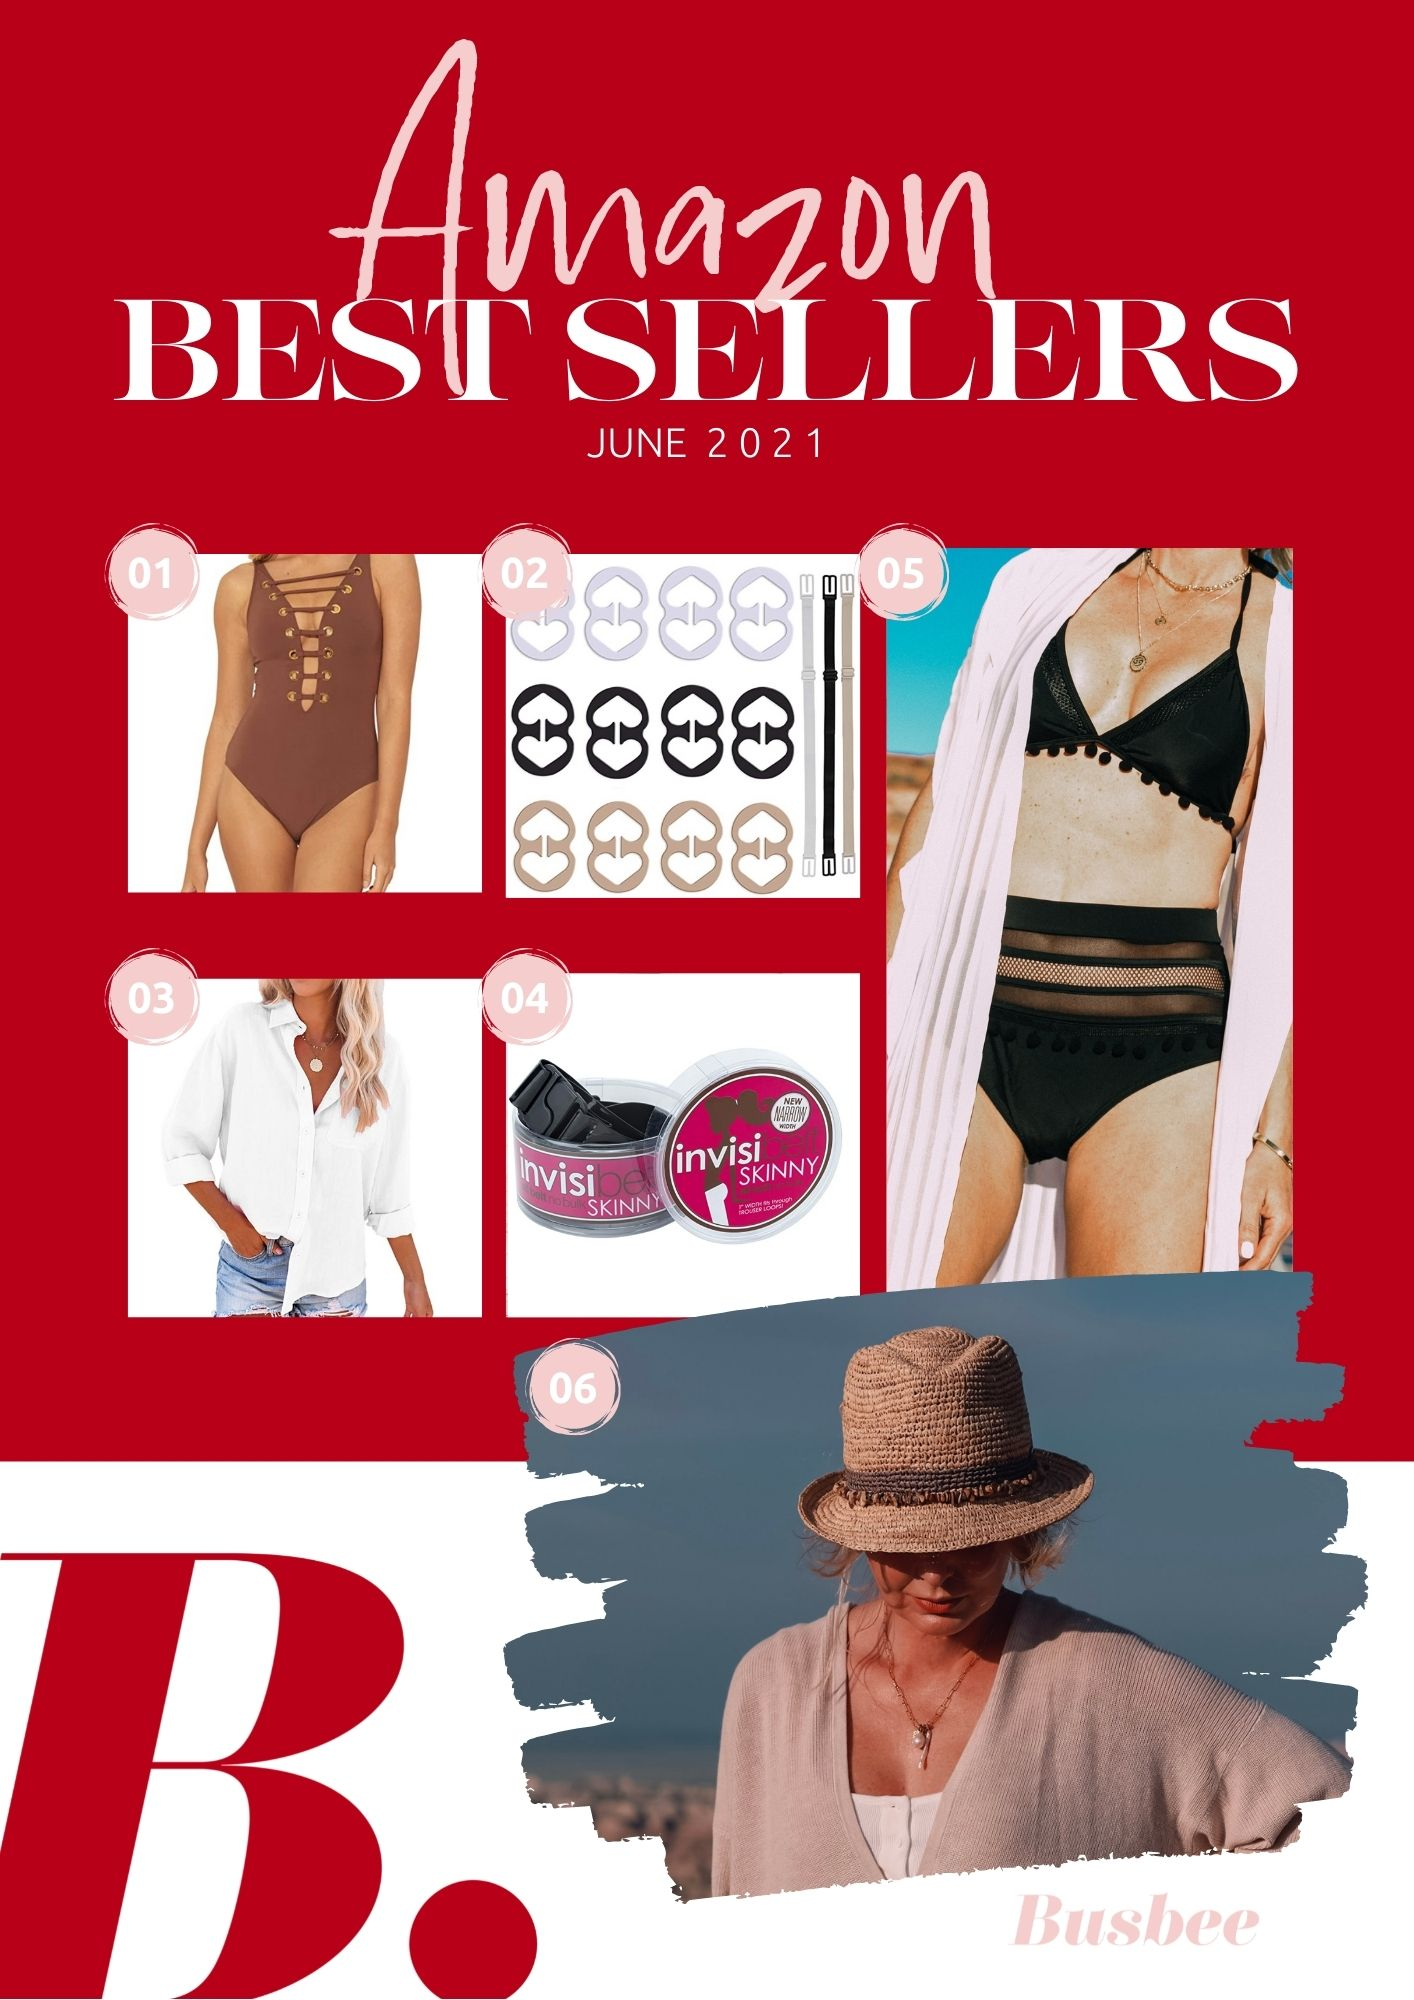 amazon best sellers, best sellers from amazon, $26 amazon swimsuit, rod beattie one piece swimsuit, bra clips, invisabelt, white button down shirt, packable hat, adjustable hat